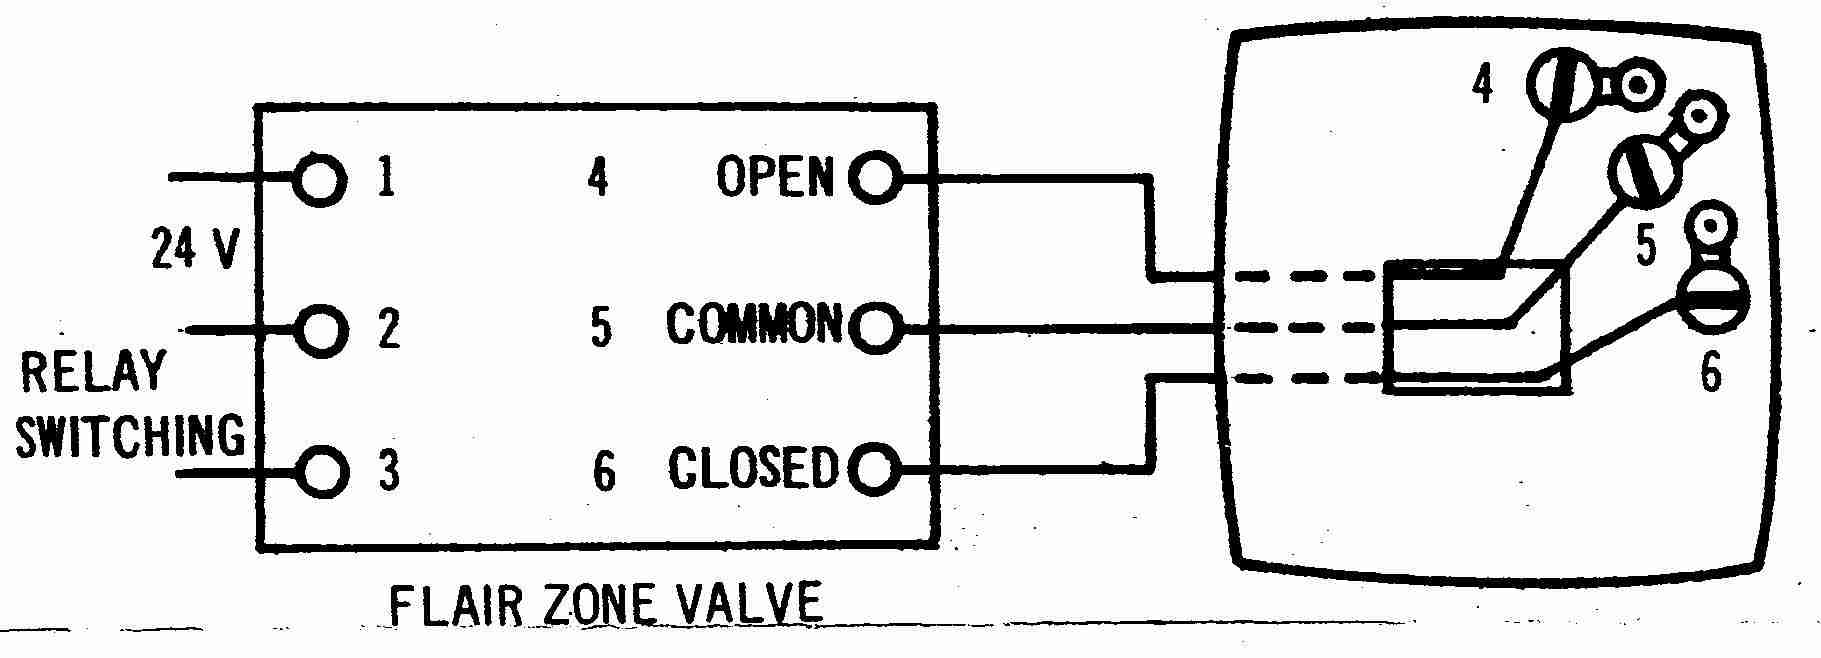 Flair3w_001_DJFc2 zone valve wiring installation & instructions guide to heating motor operated valve wiring diagram at gsmportal.co